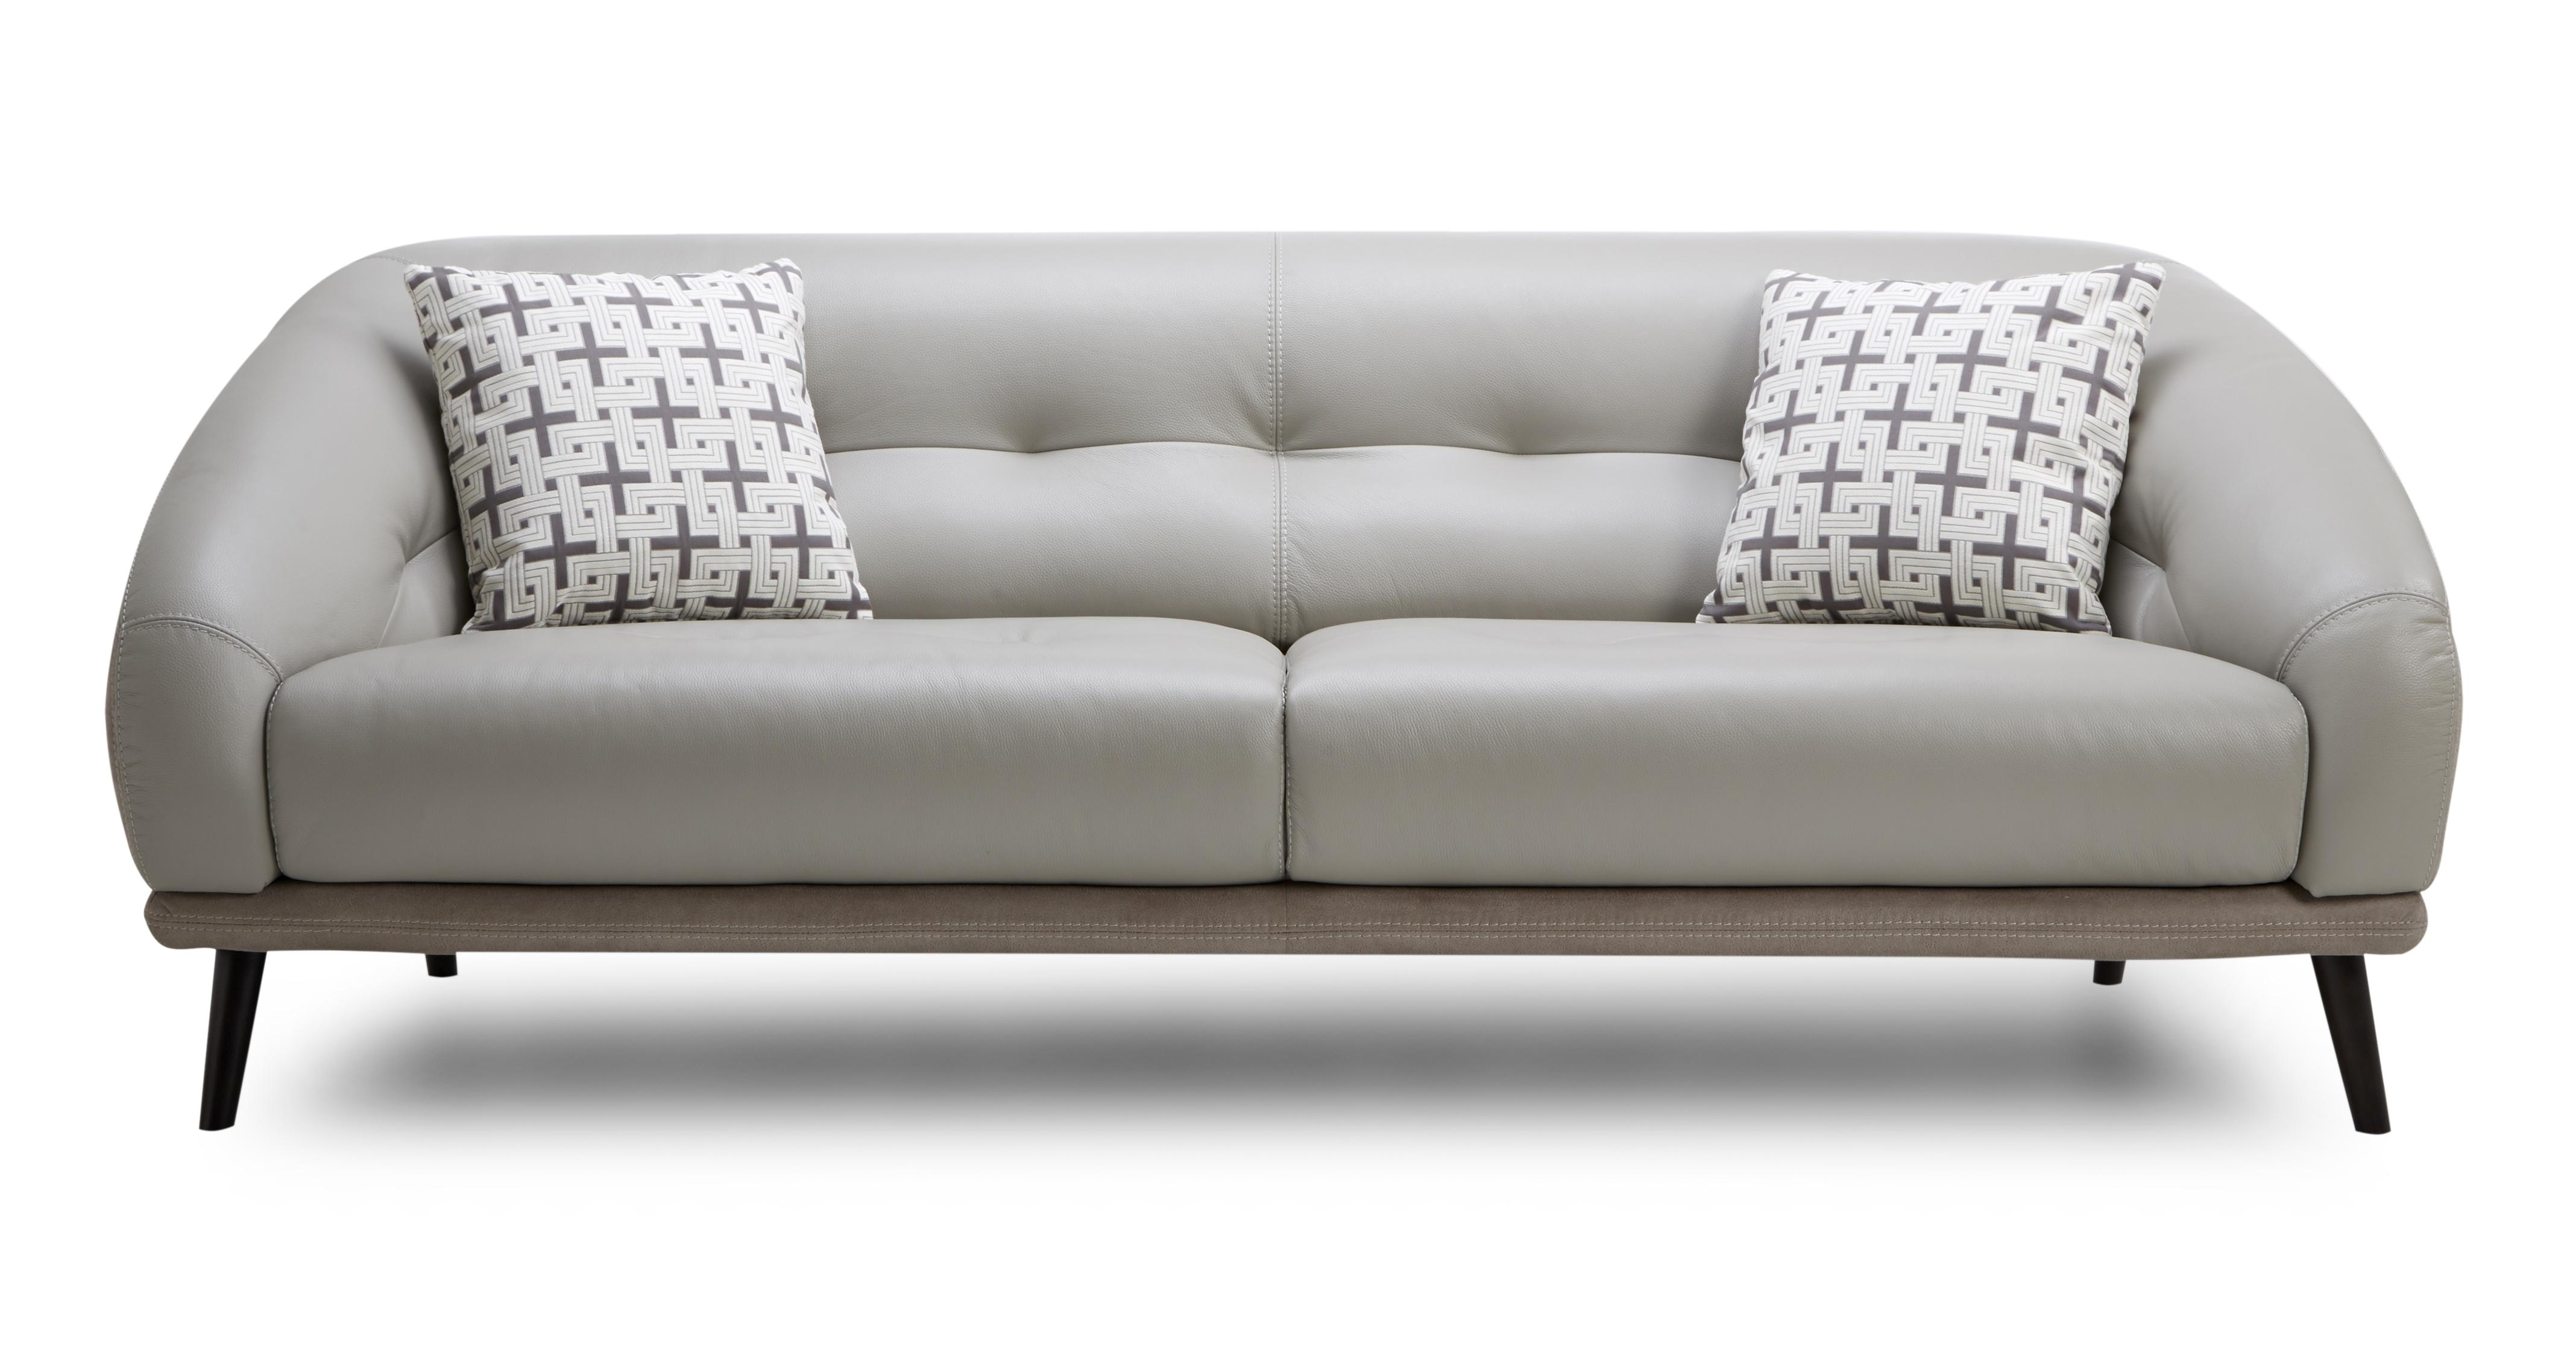 Fabb 3 seater sofa new club dfs parisarafo Image collections